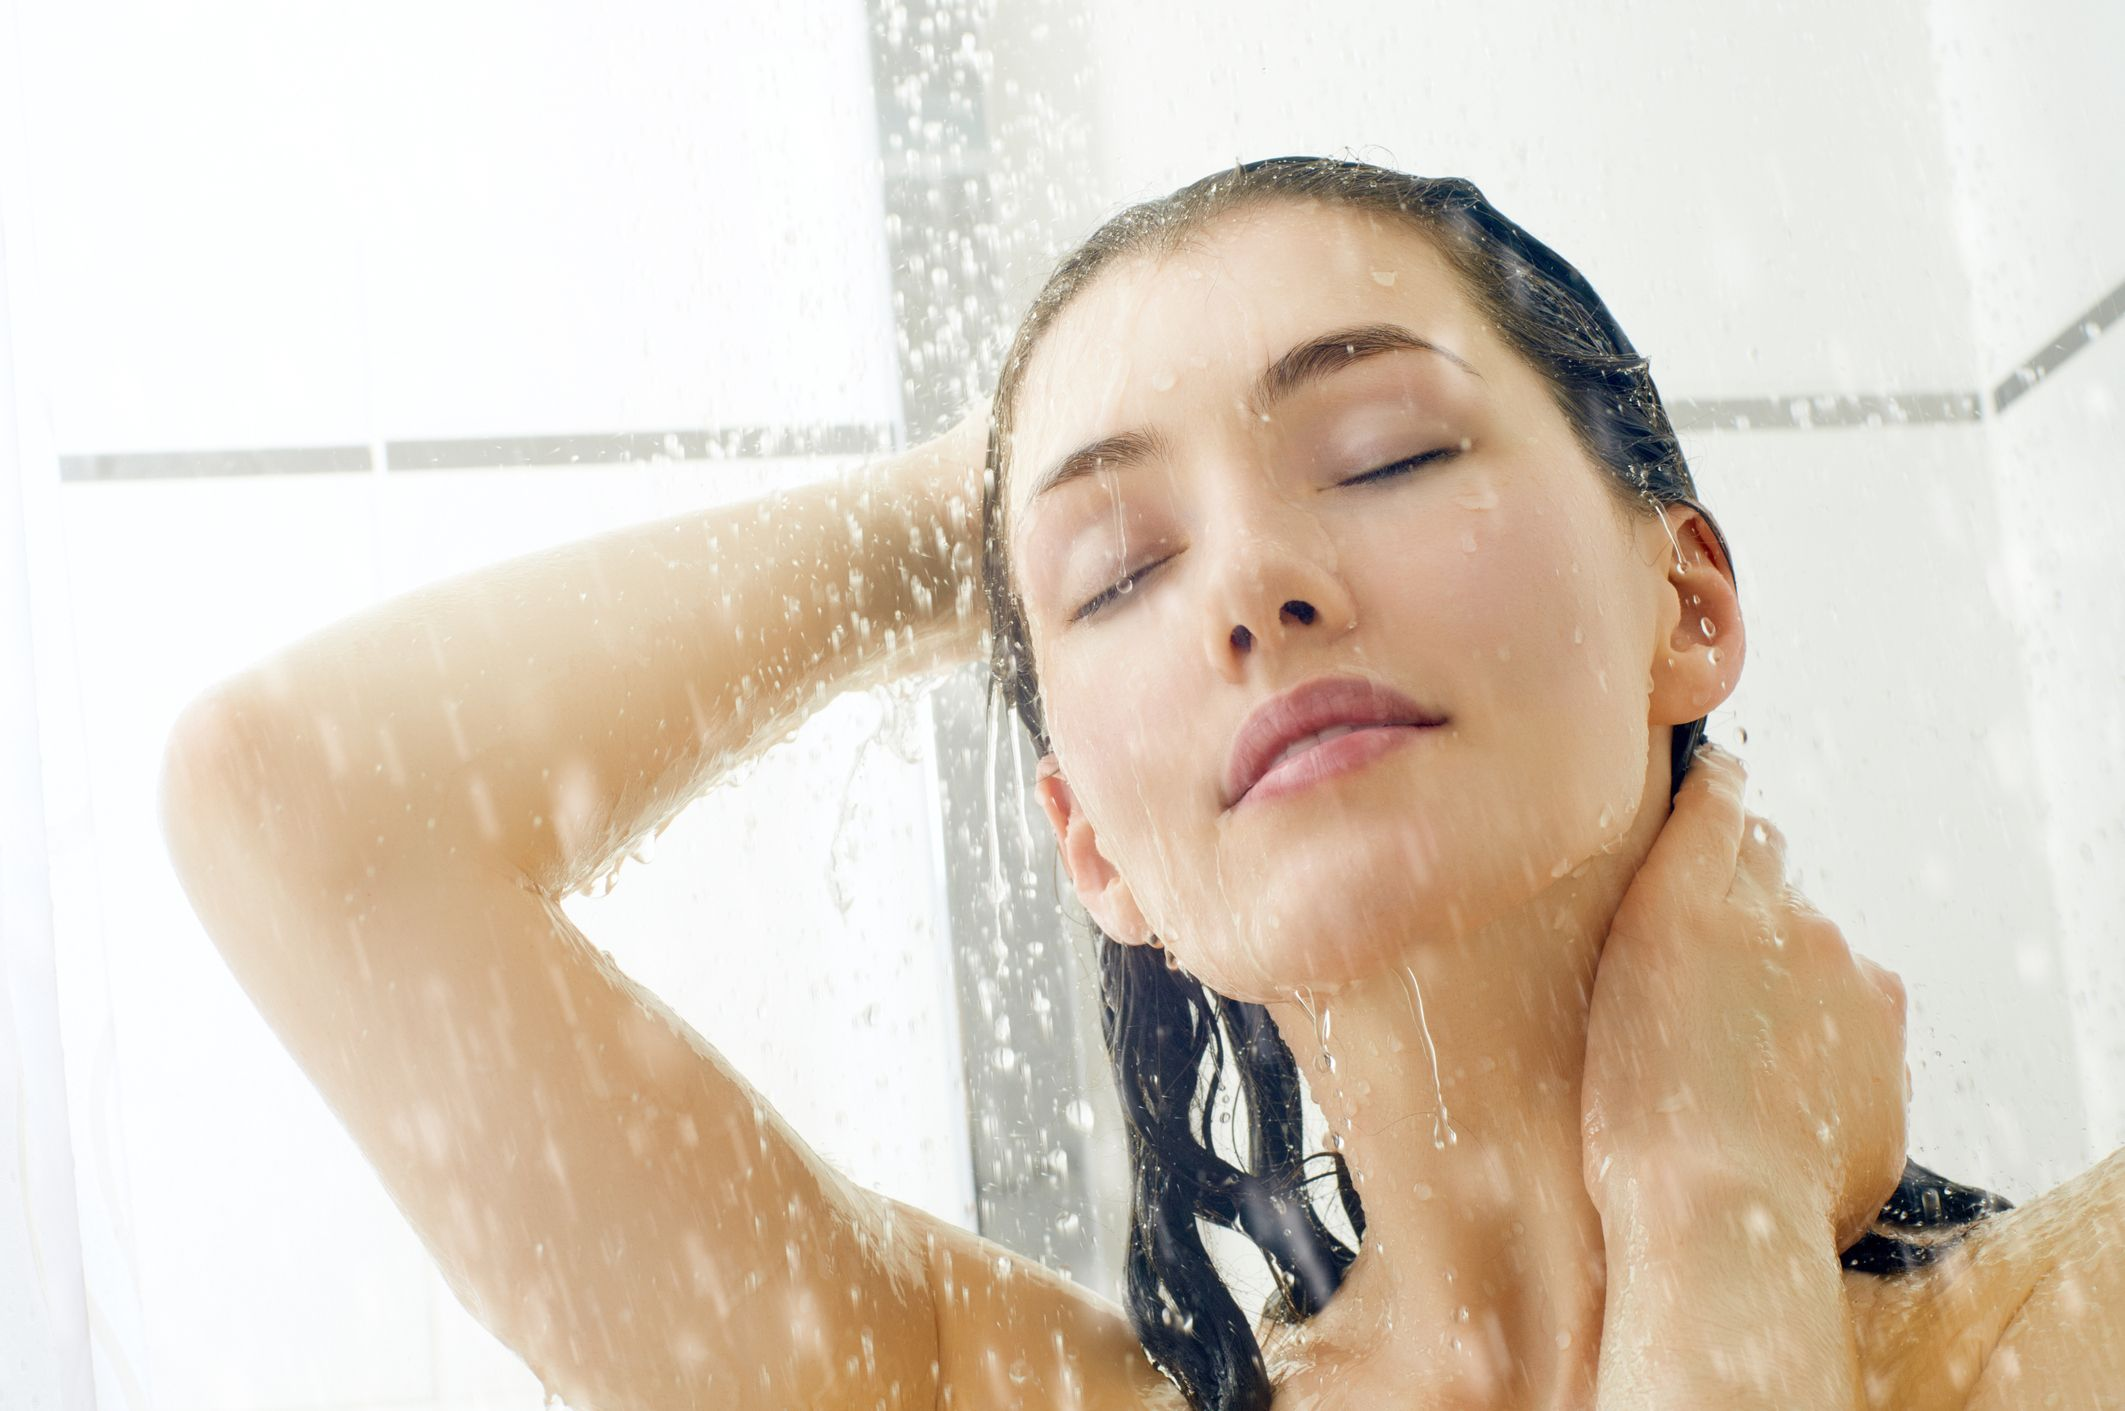 Showerhead 'Slime' Linked to Lung Disease, Study Reveals